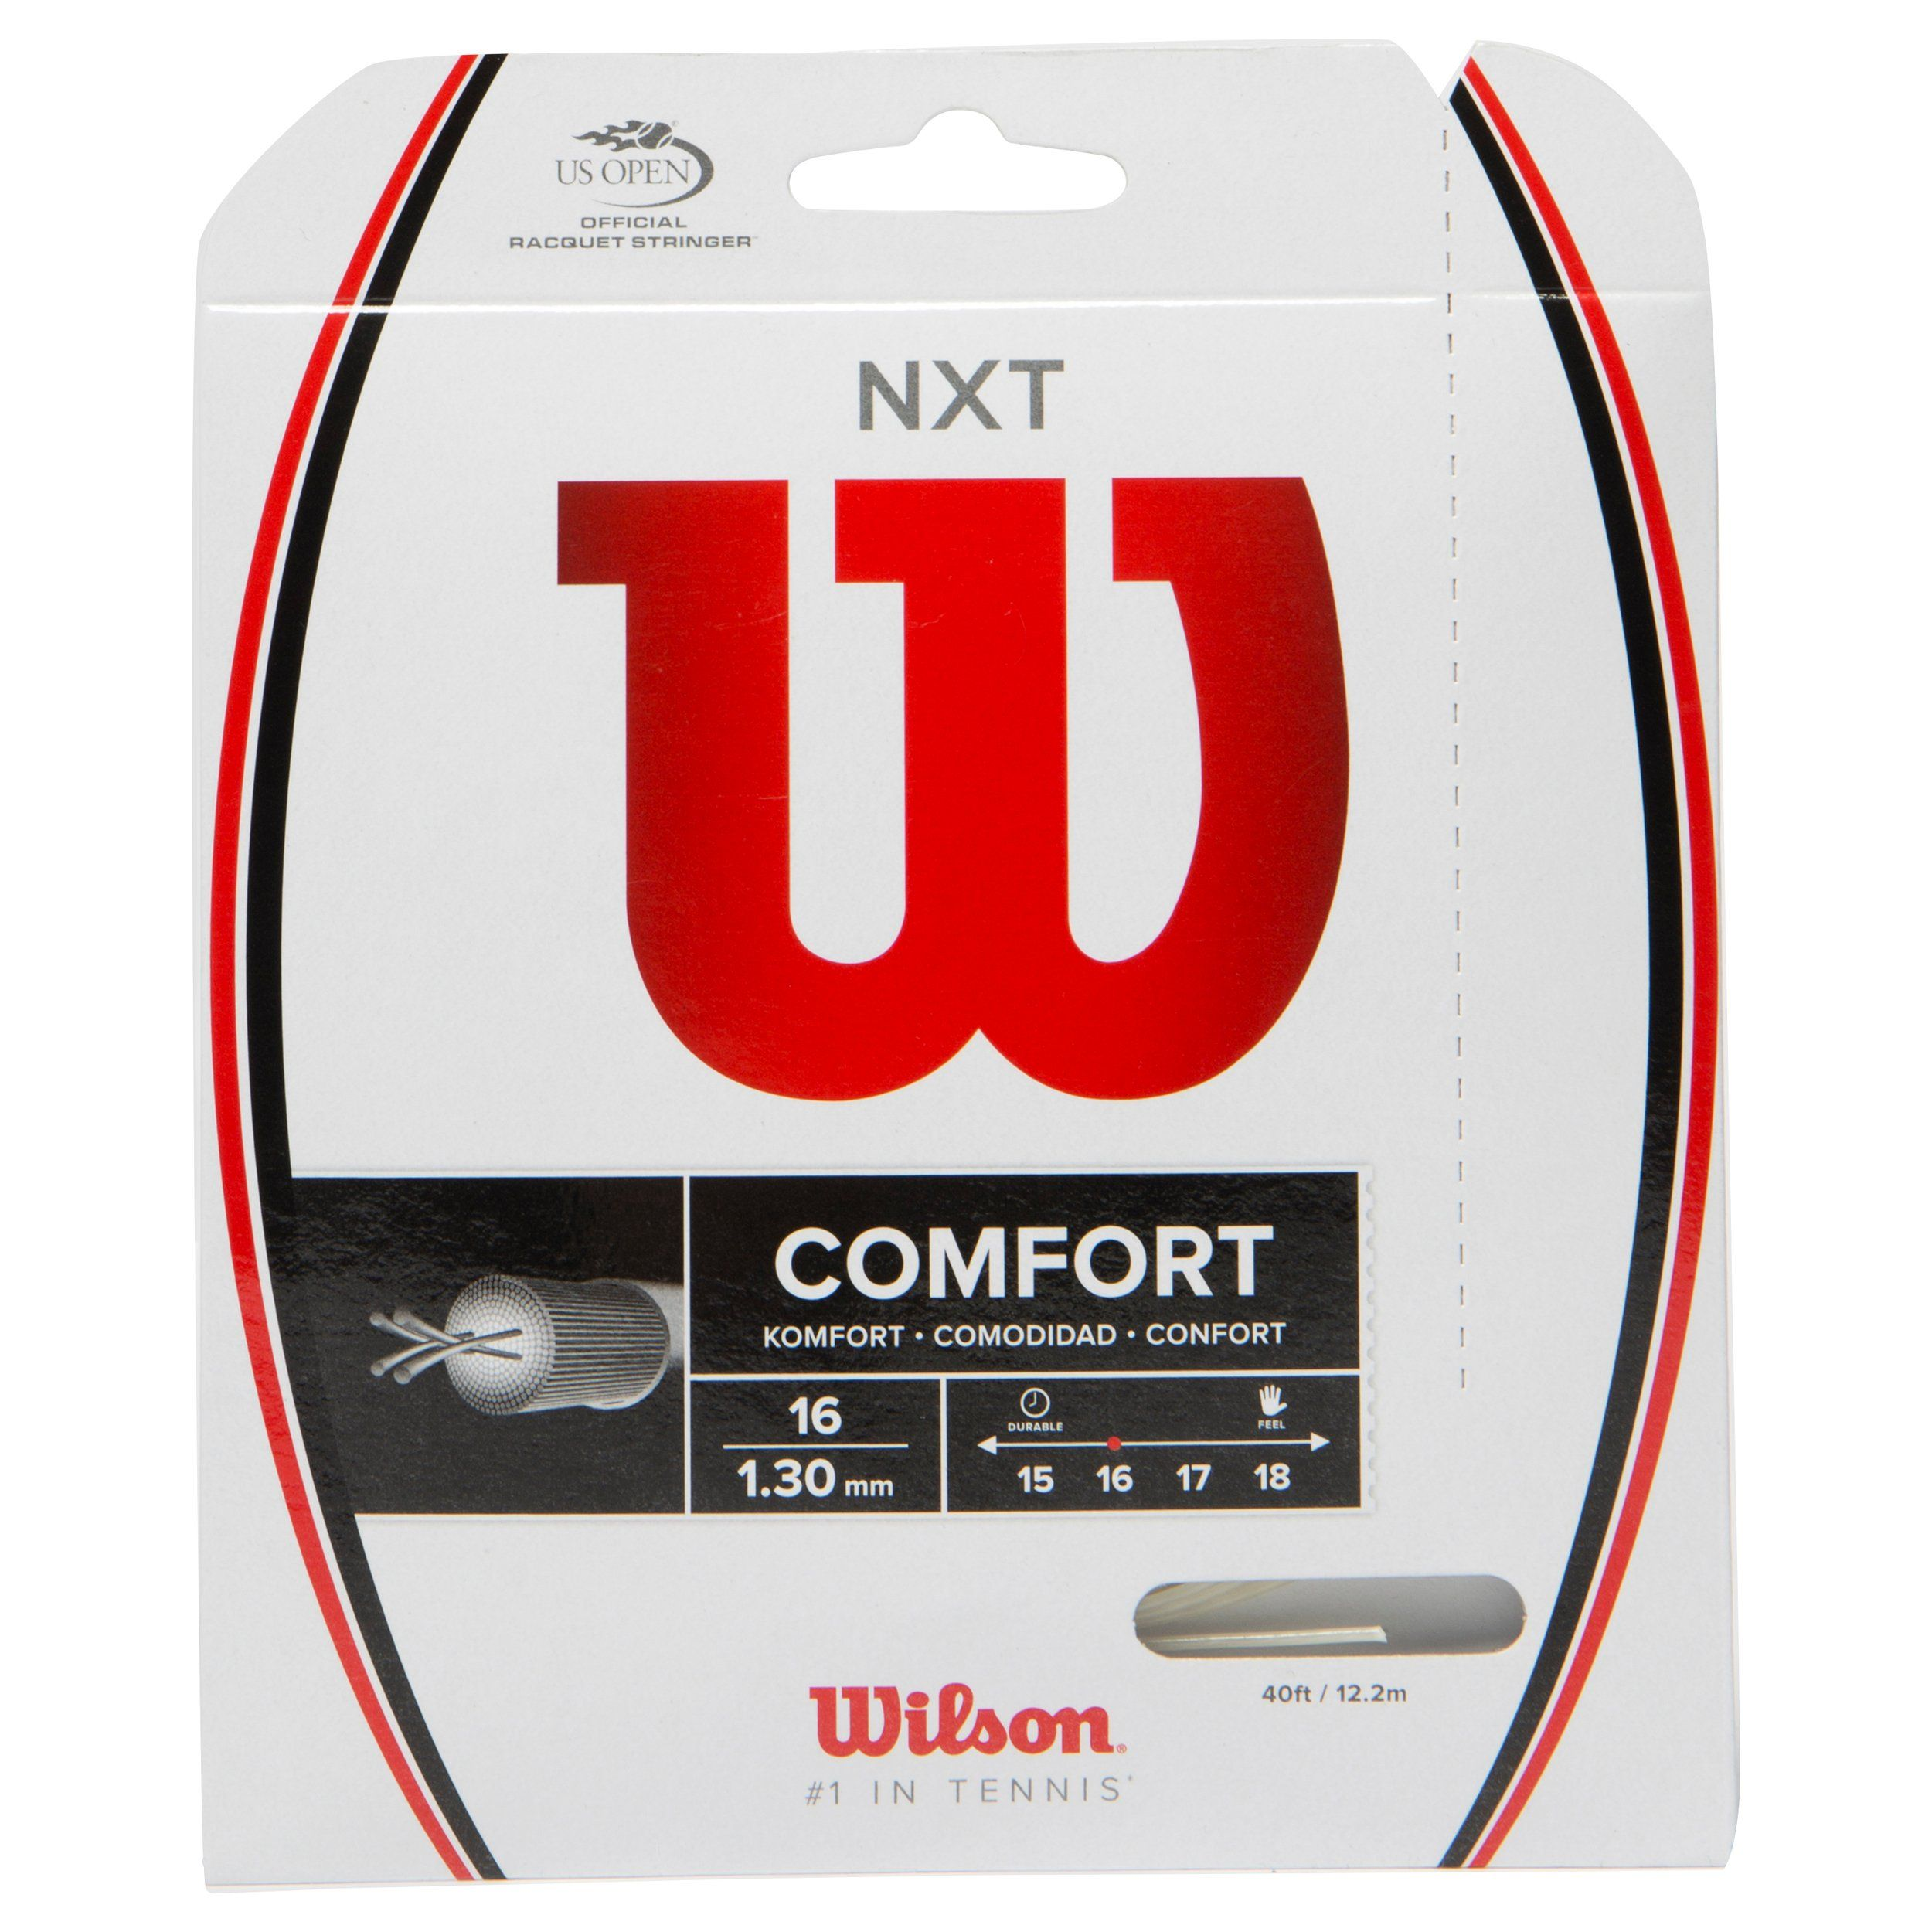 Wilson NXT Comfort String – 1.30mm (Natural) 12.2m Packet